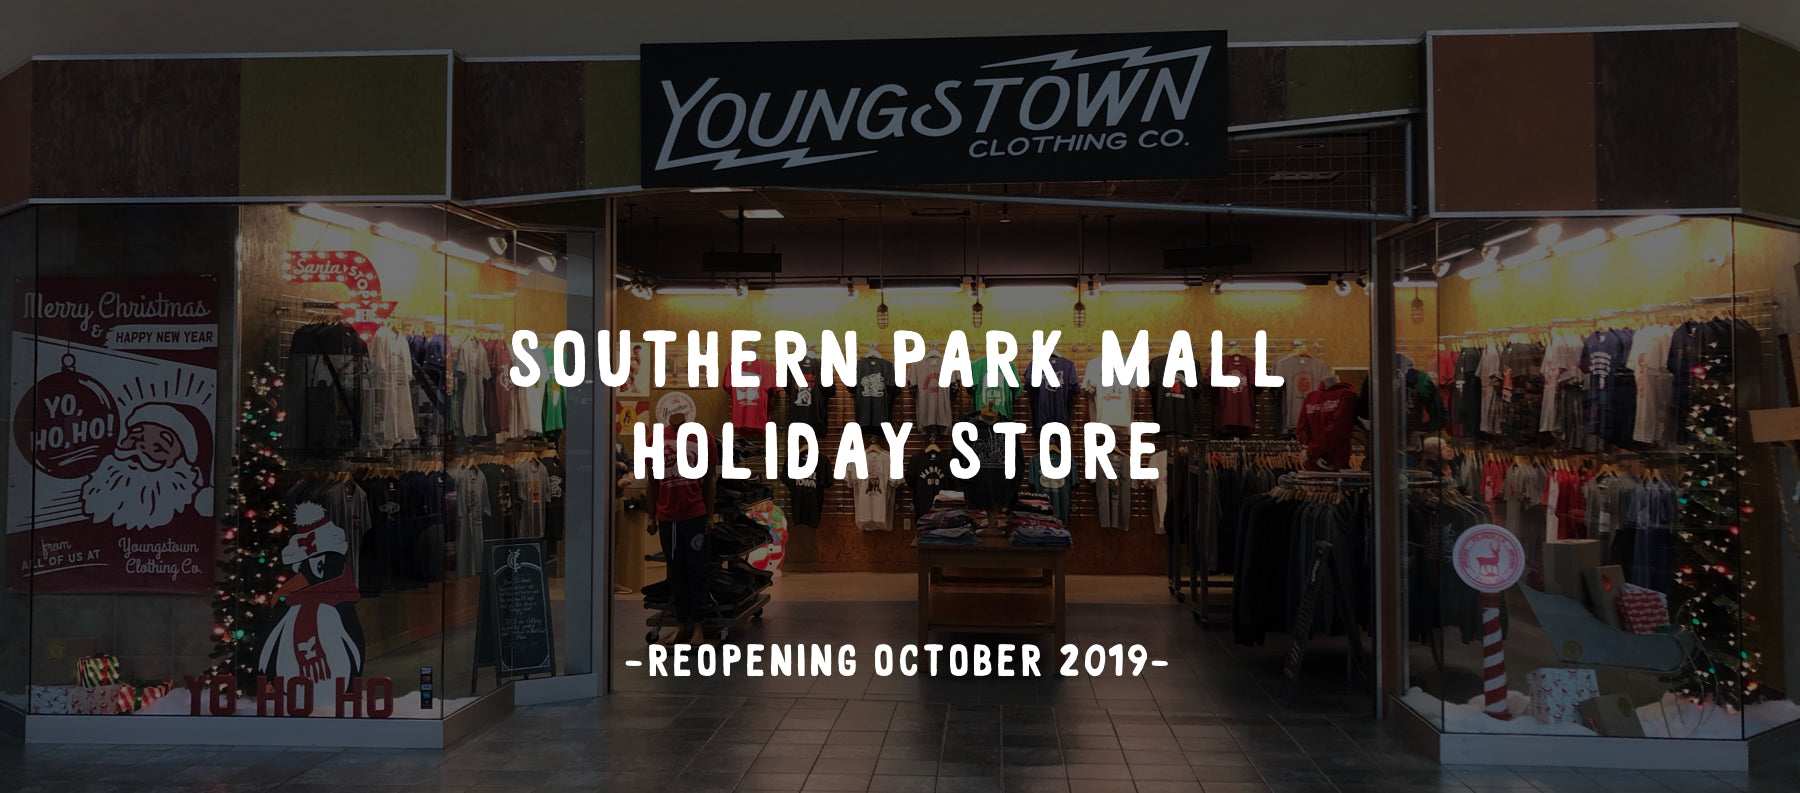 Southern Park Mall Holiday Store